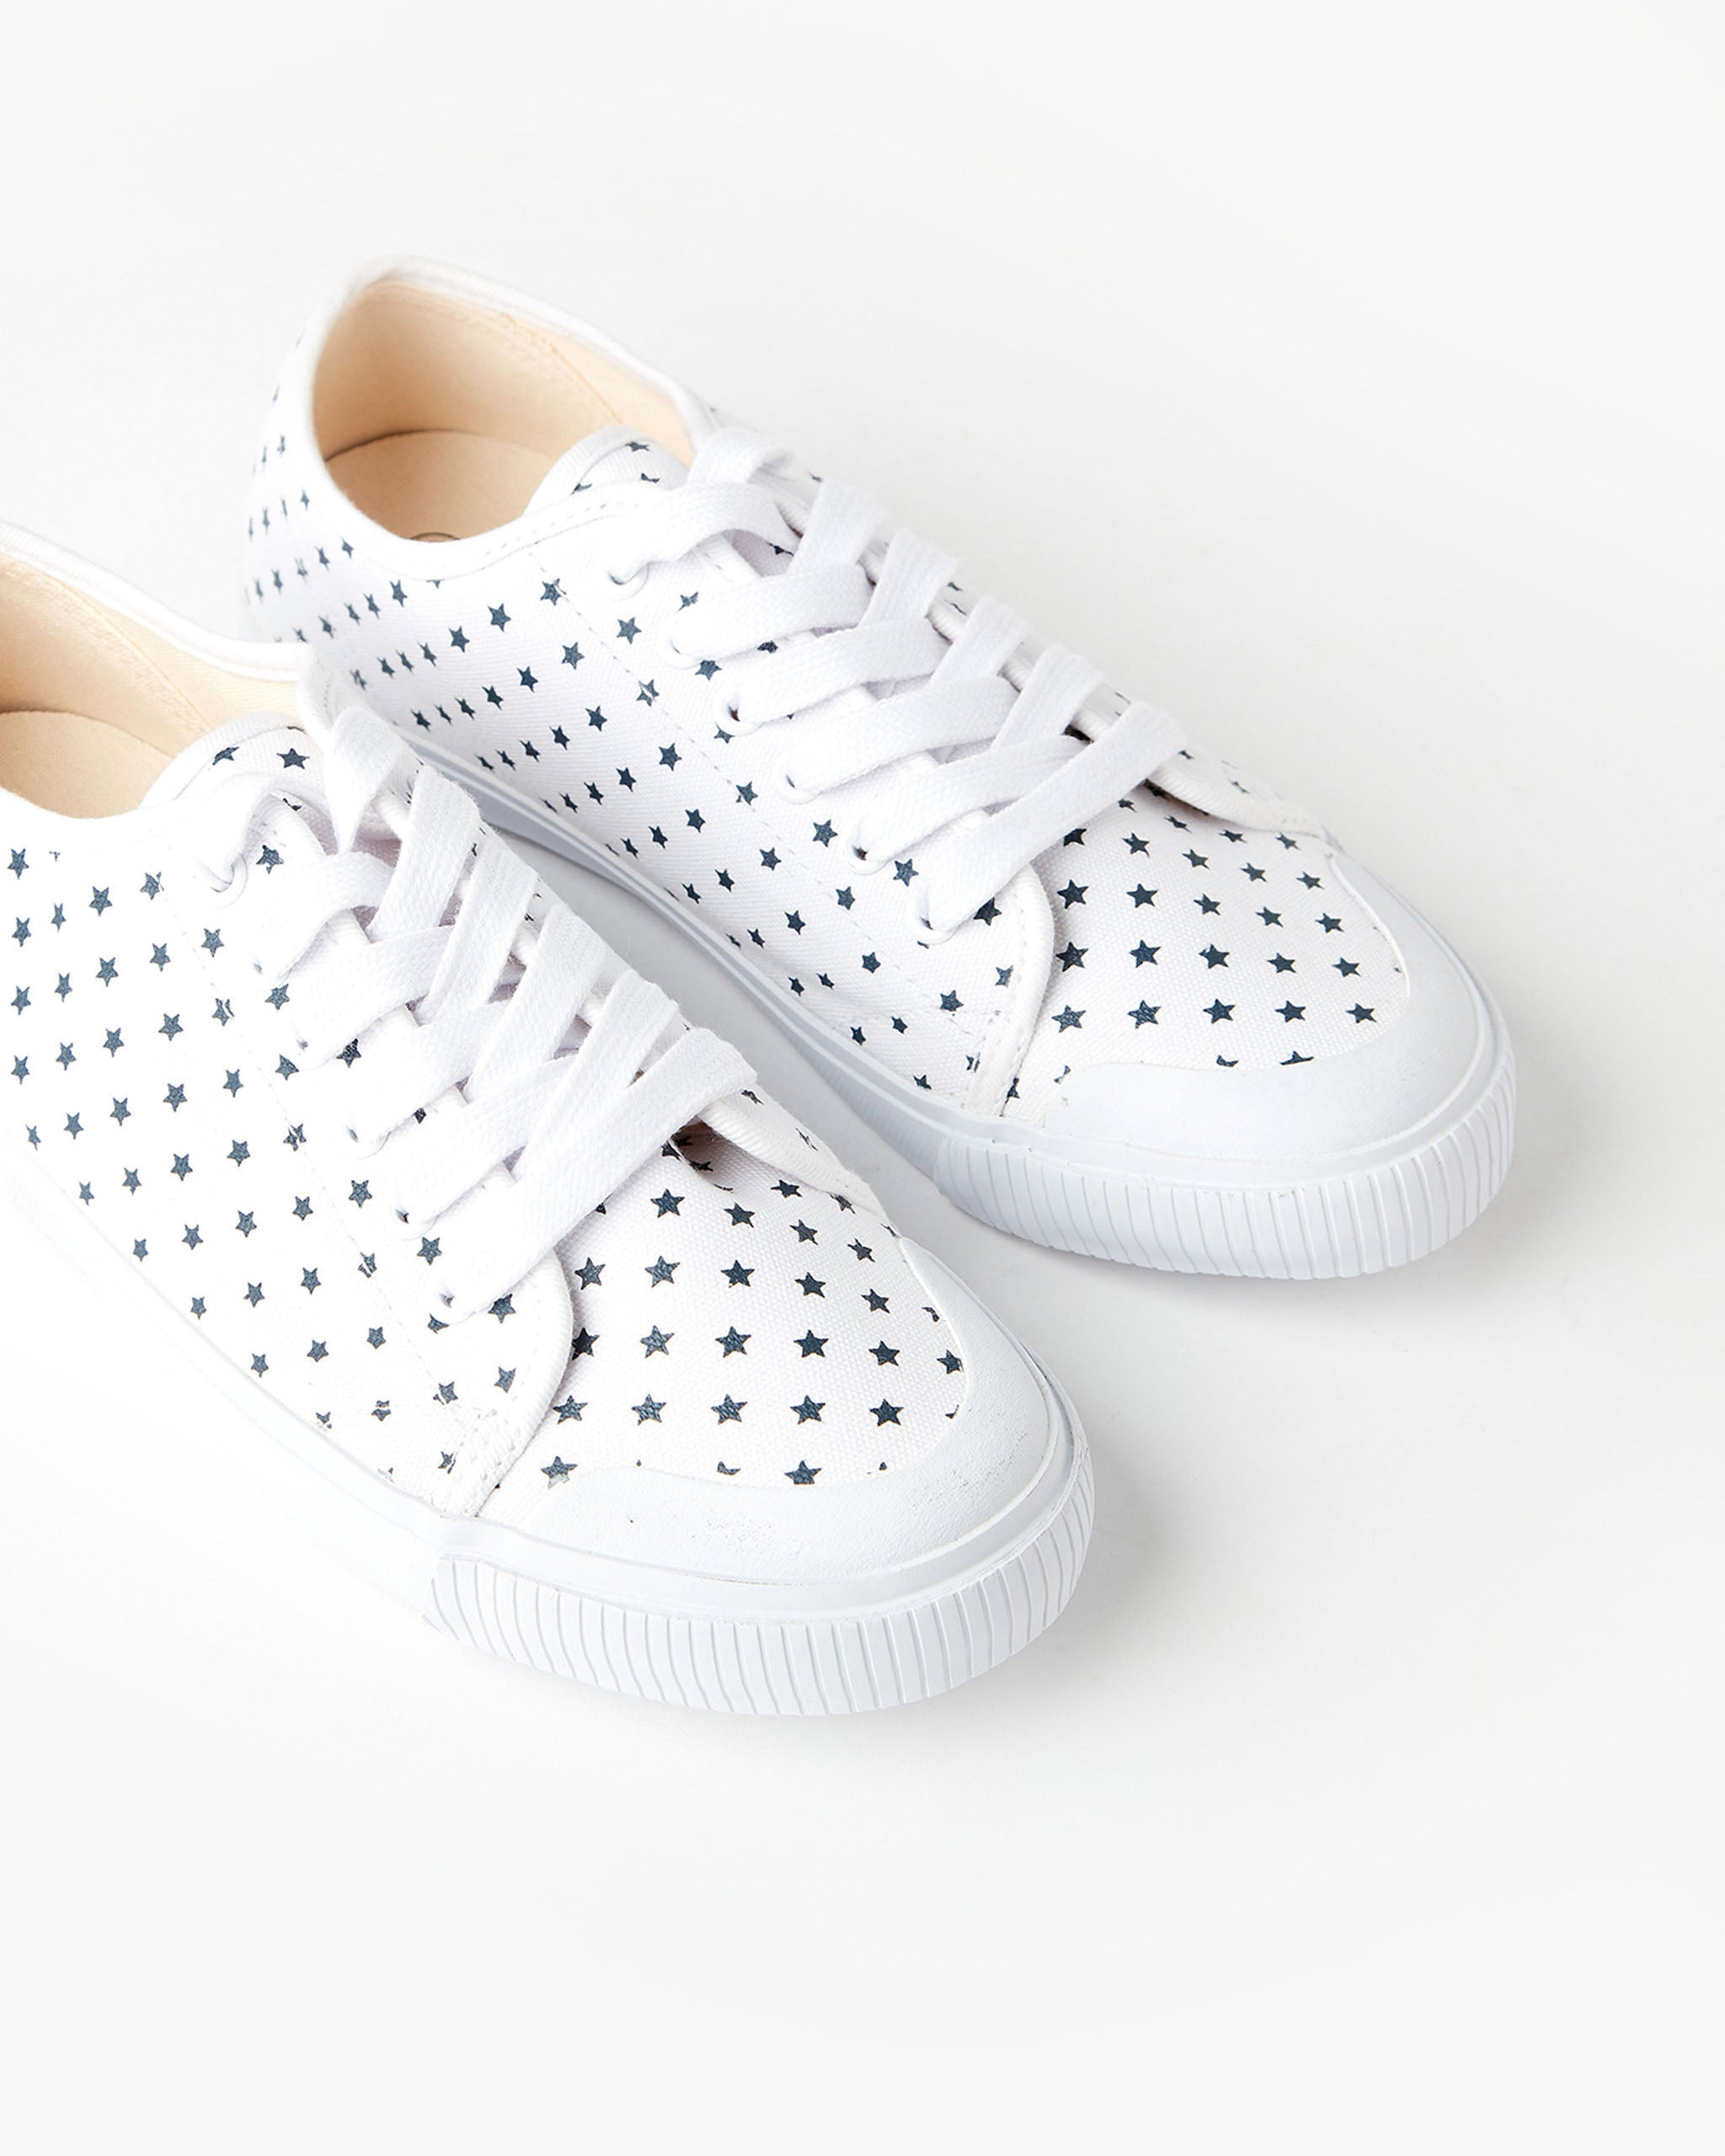 Empire Canvas Sneaker White Navy Star